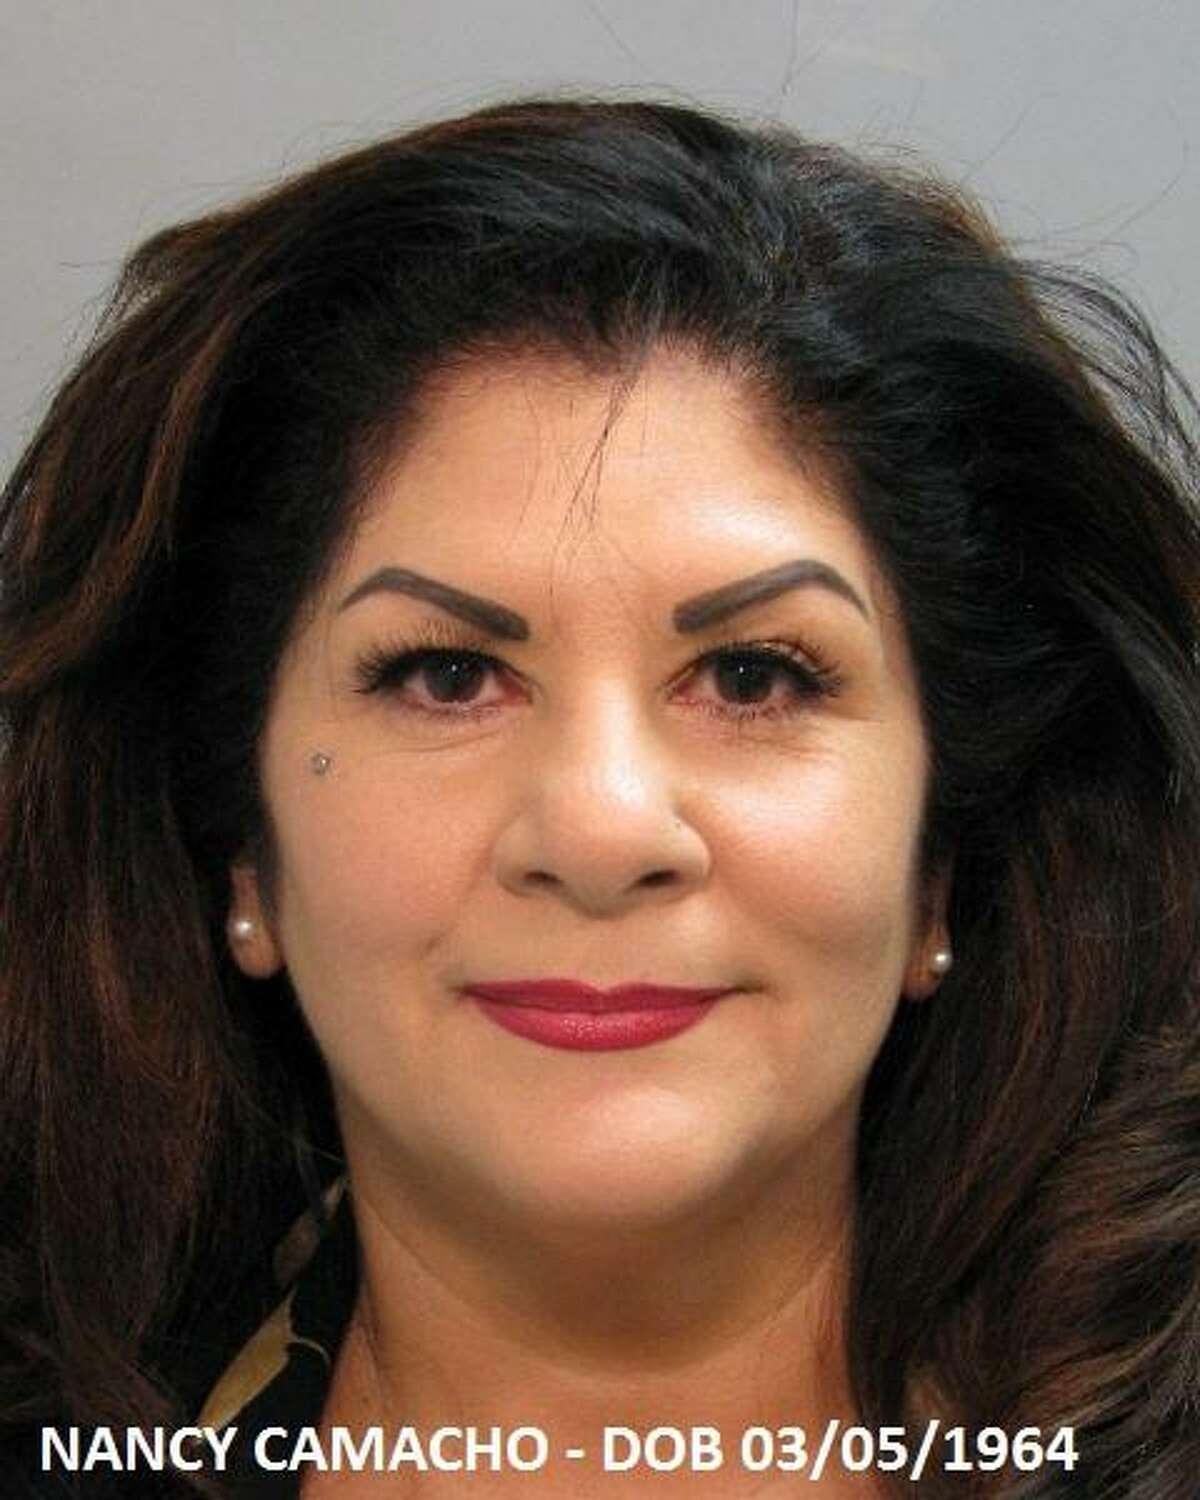 Nancy Camacho was arrested and charged with operating a massage parlor without a license.